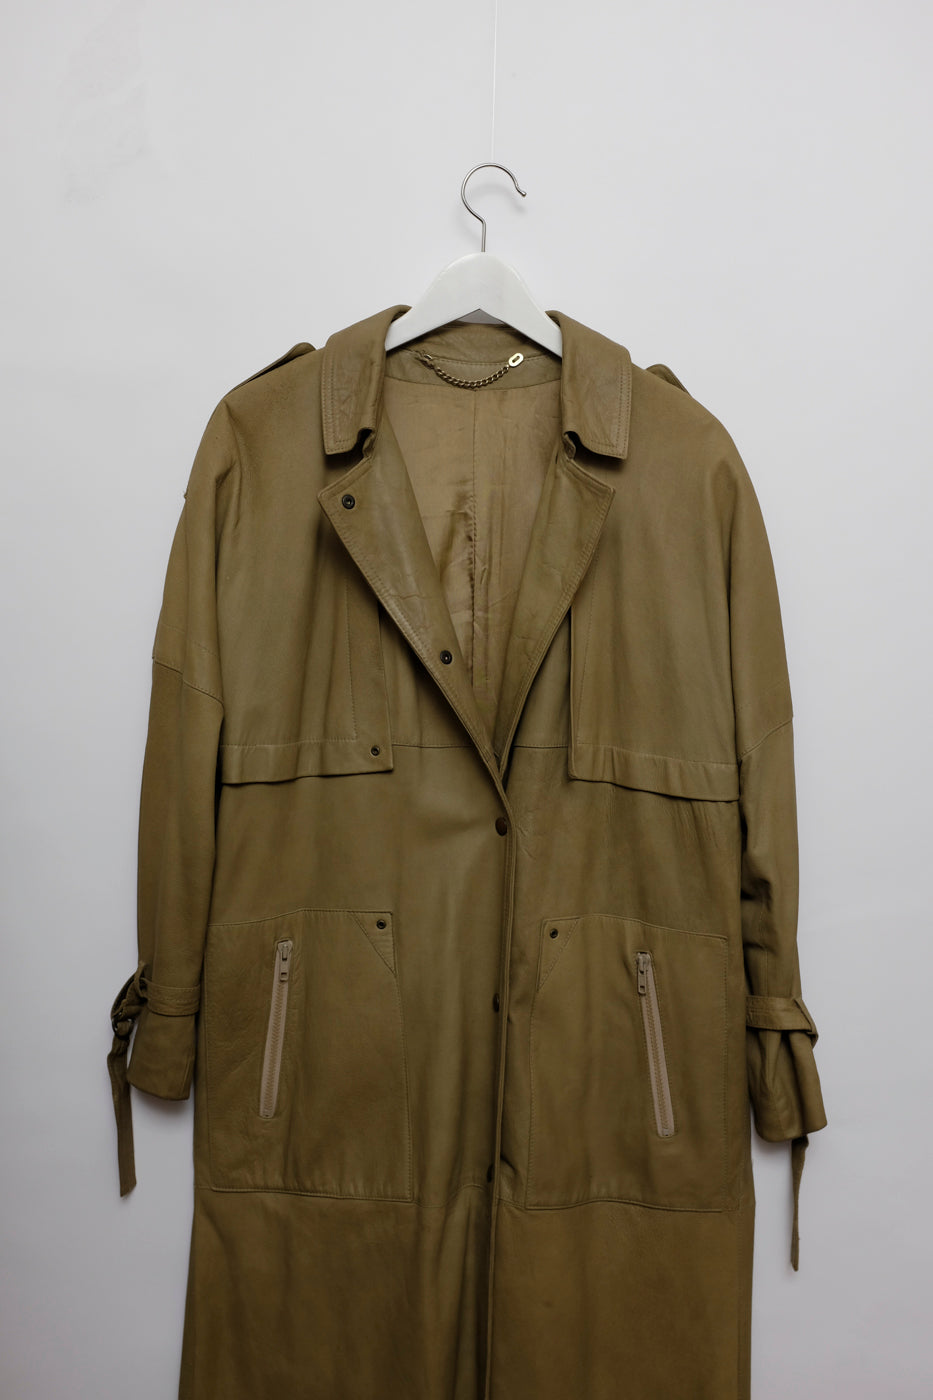 0010_VINTAGE KHAKI LEATHER TRENCHCOAT